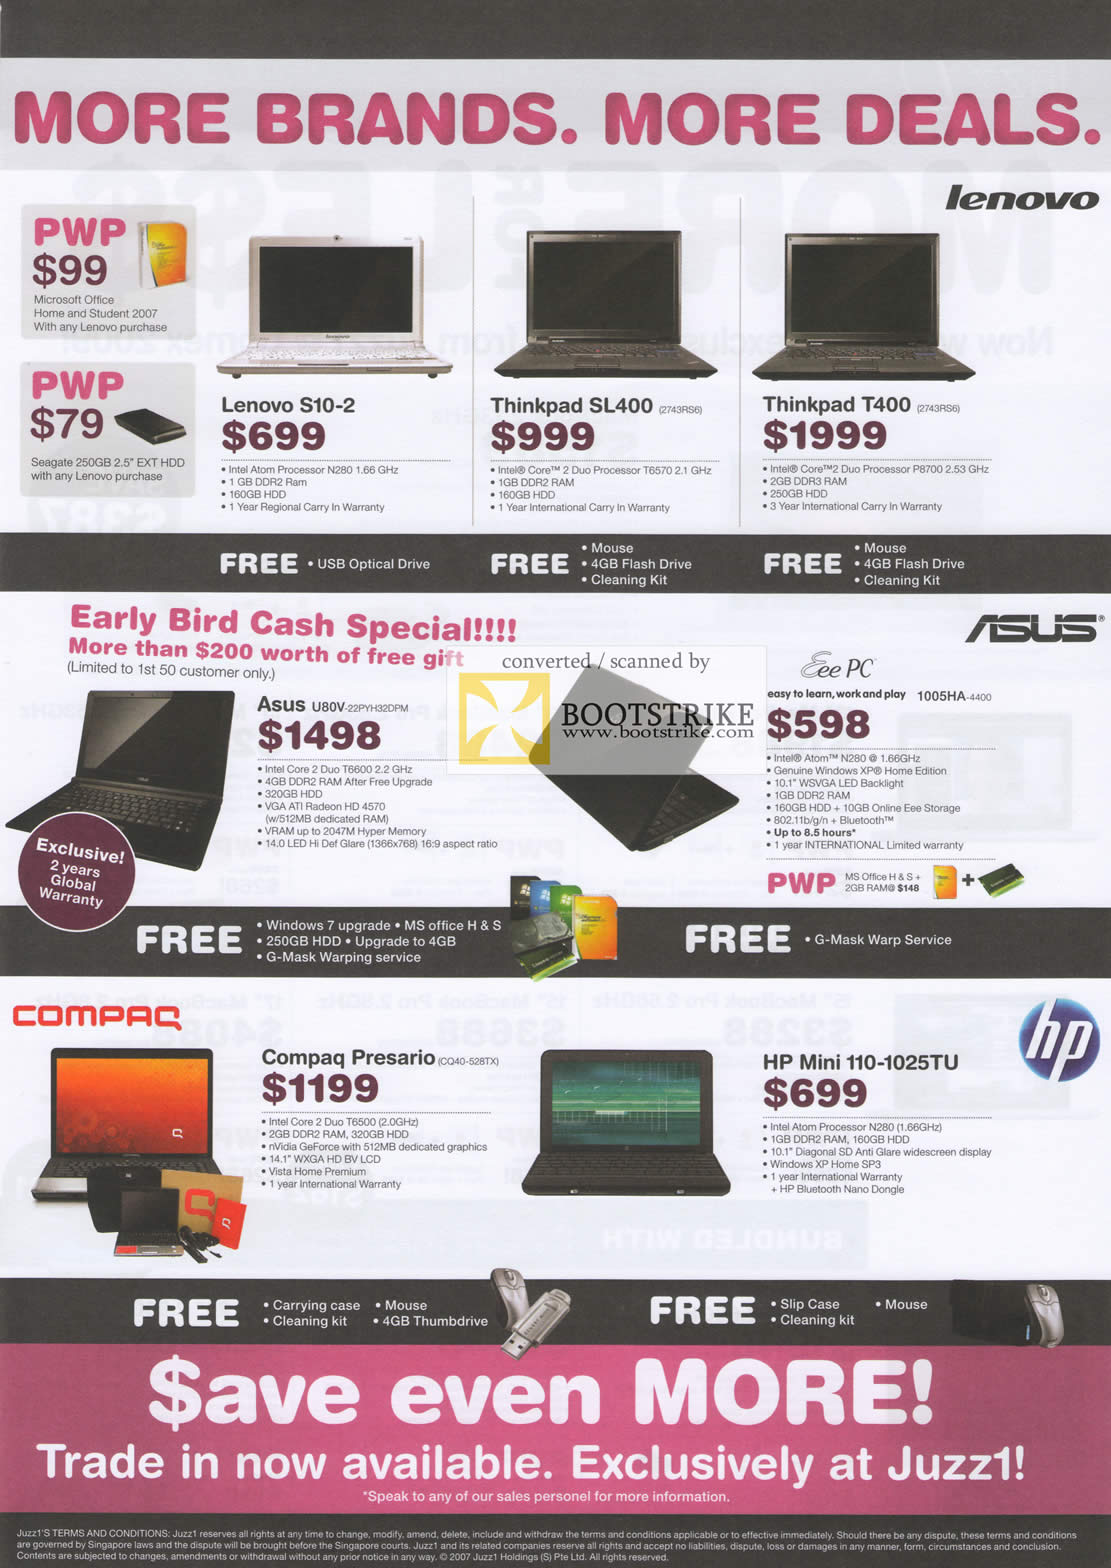 Comex 2009 price list image brochure of Juzz1 Lenovo S10 Thinkpad SL400 T400 Asus U80v 1005ha Compaq Hp Mini